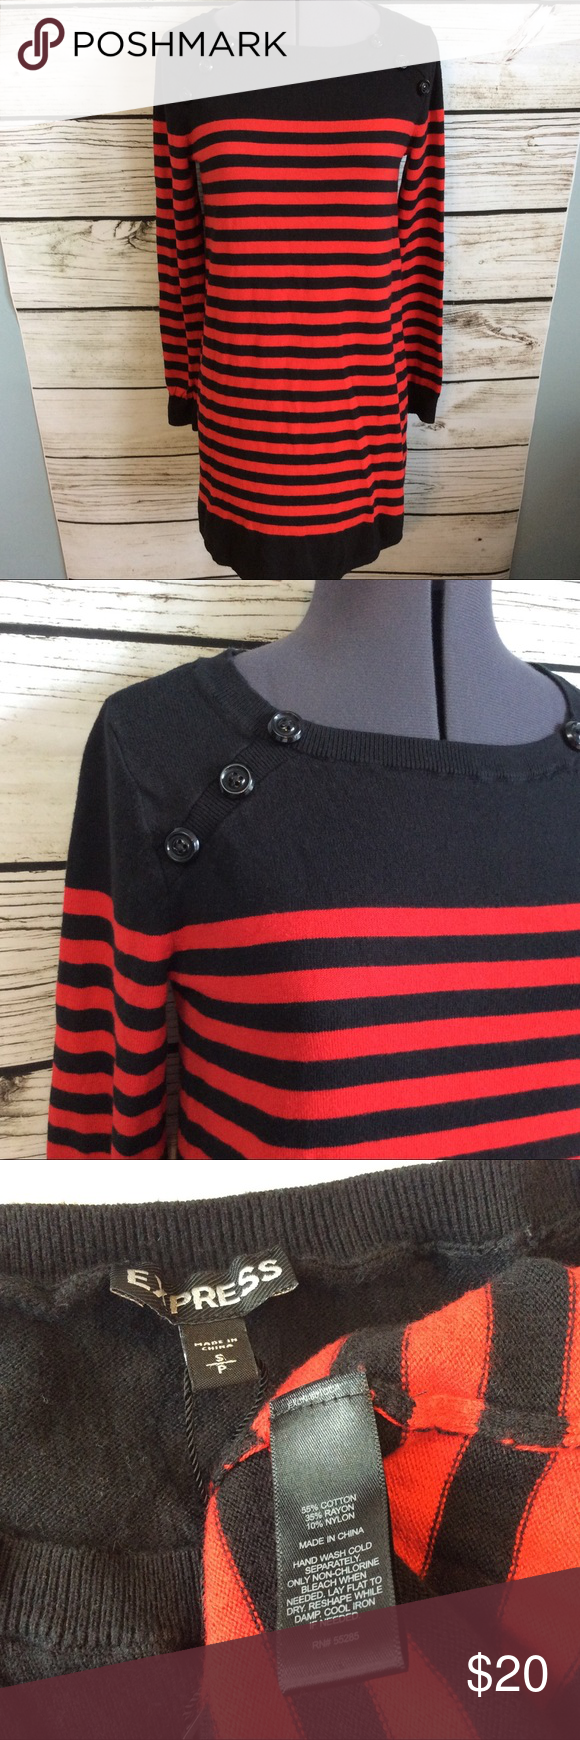 f72235a2f4 Express sweater dress s red black tunic stripe Pre owned